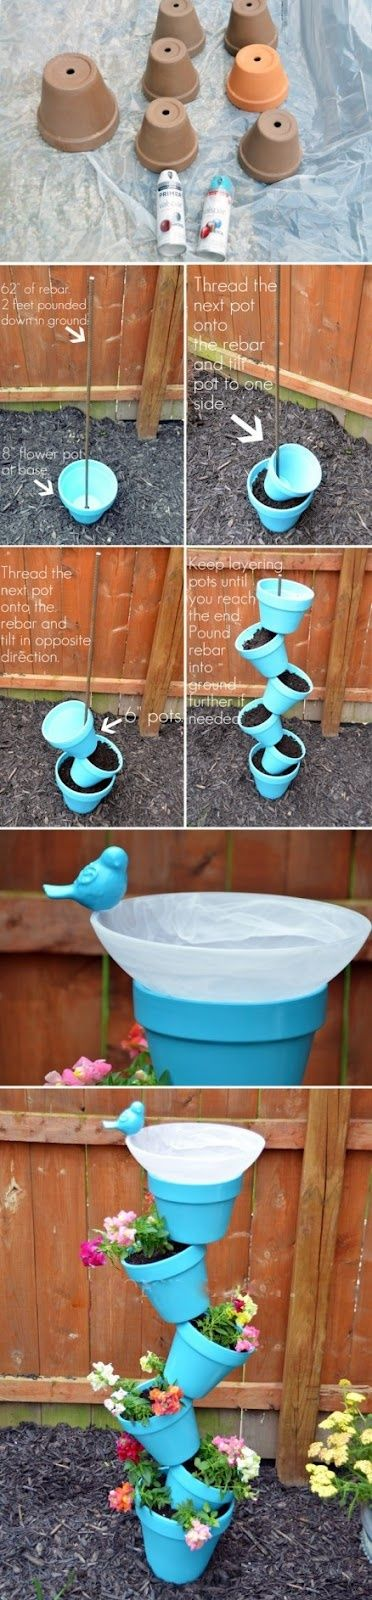 Topsy Turvy Planter U0026 Birdfeeder: Very Cute And Inexpensive. Could Forget  Bird Feeder And Plant Herbs